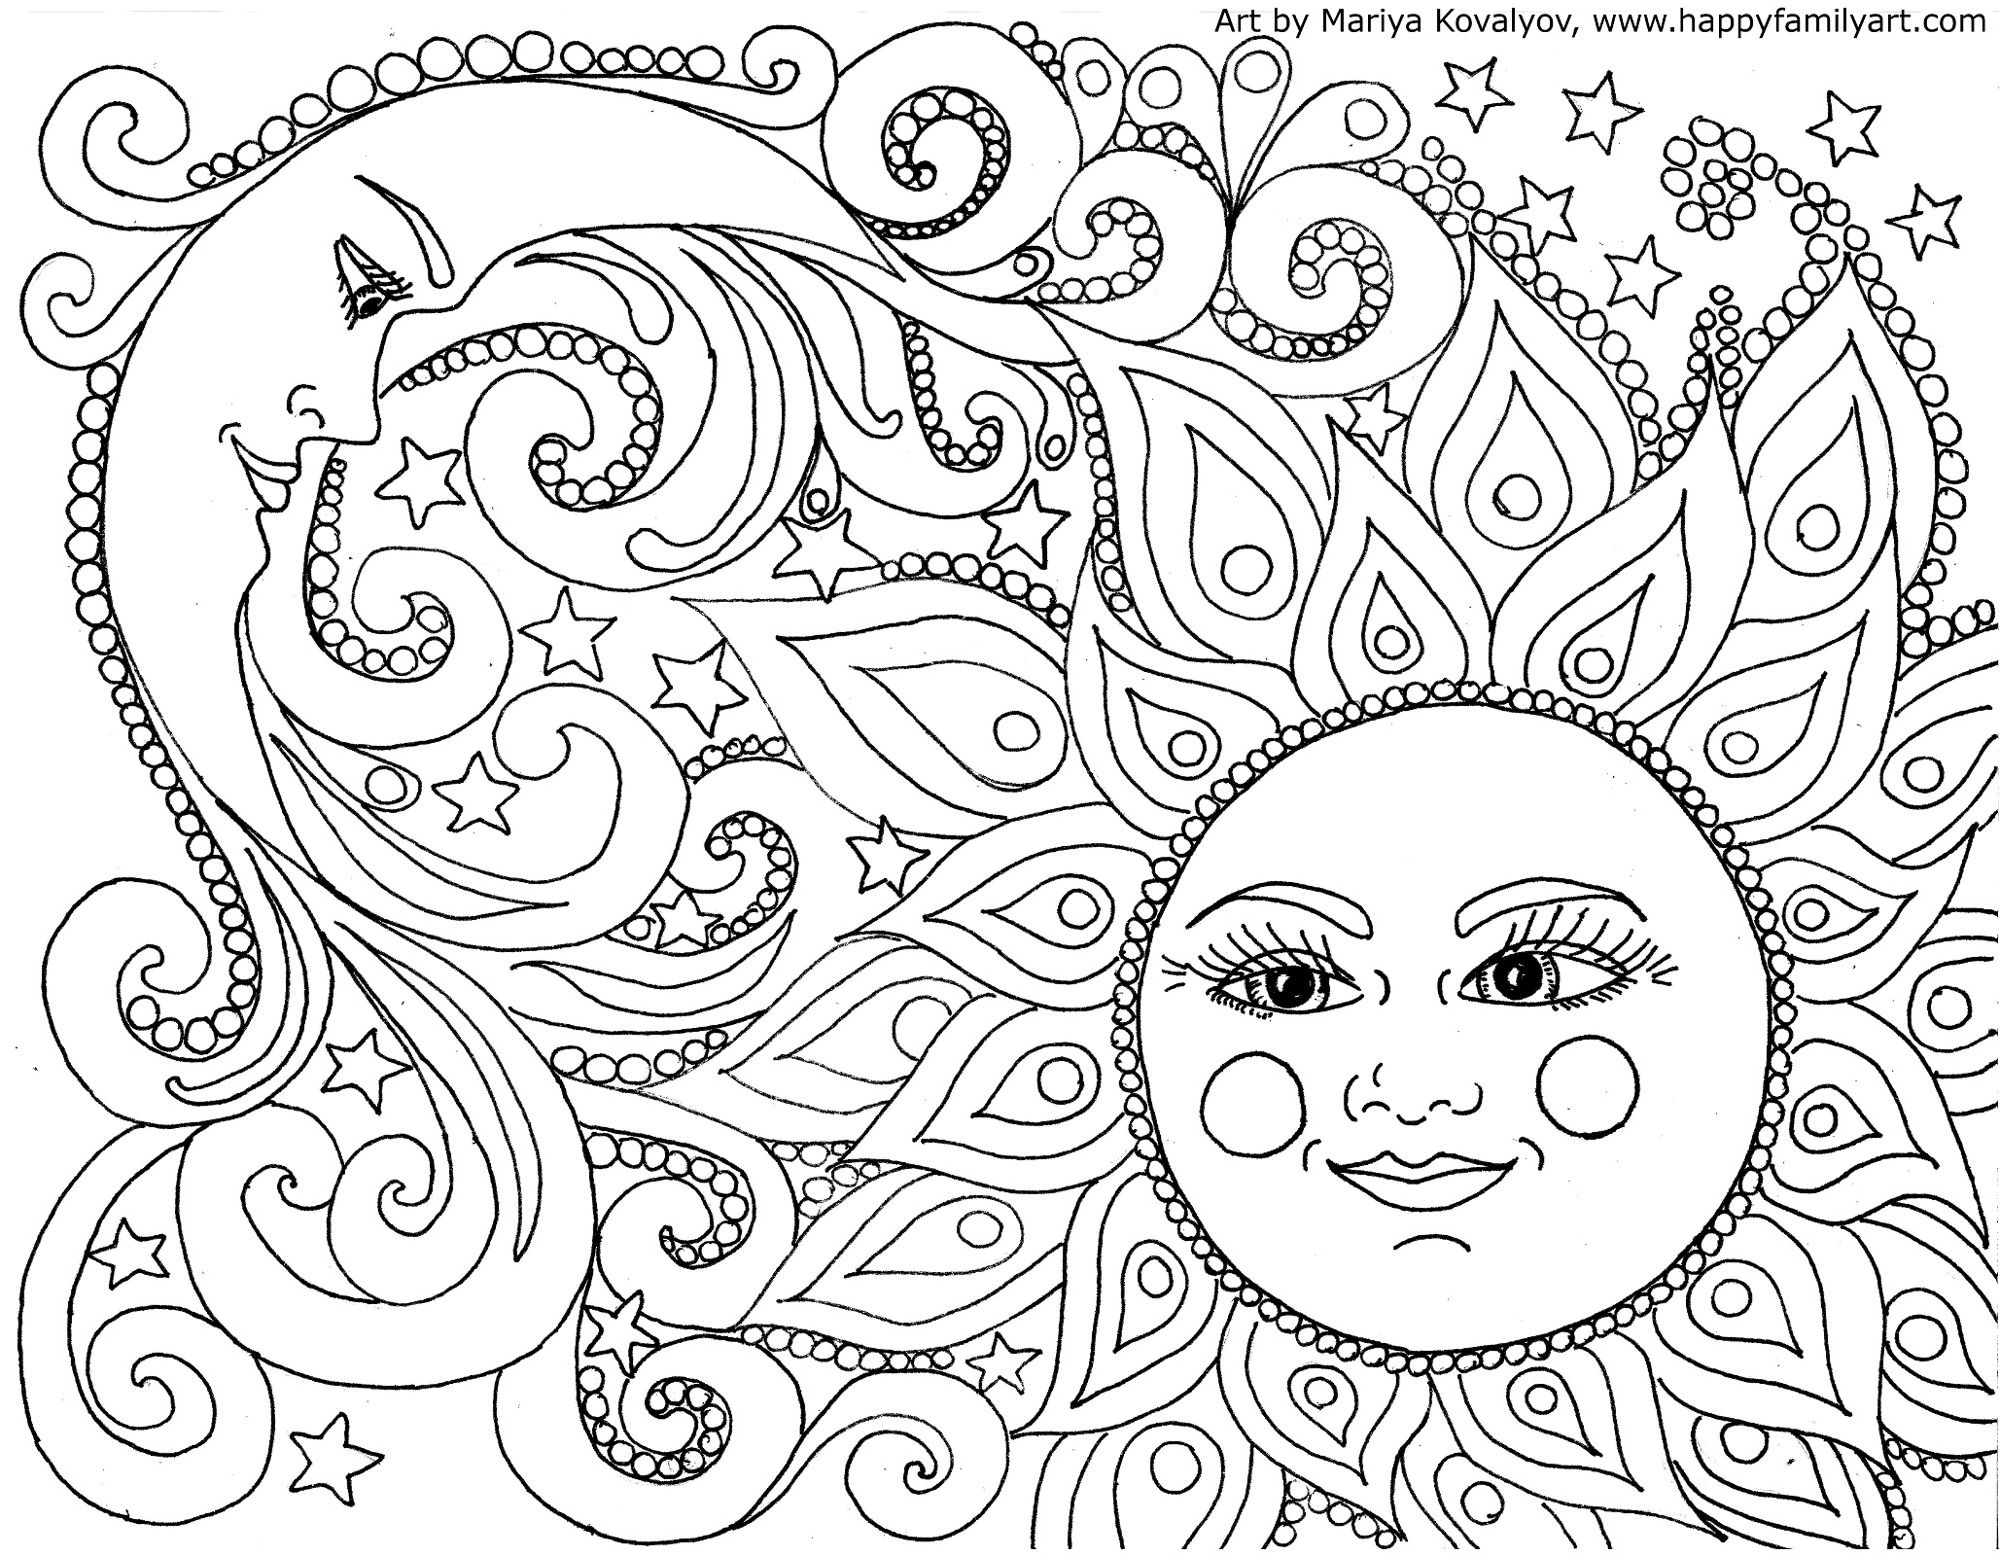 17 best ideas about adult coloring pages on pinterest | colouring